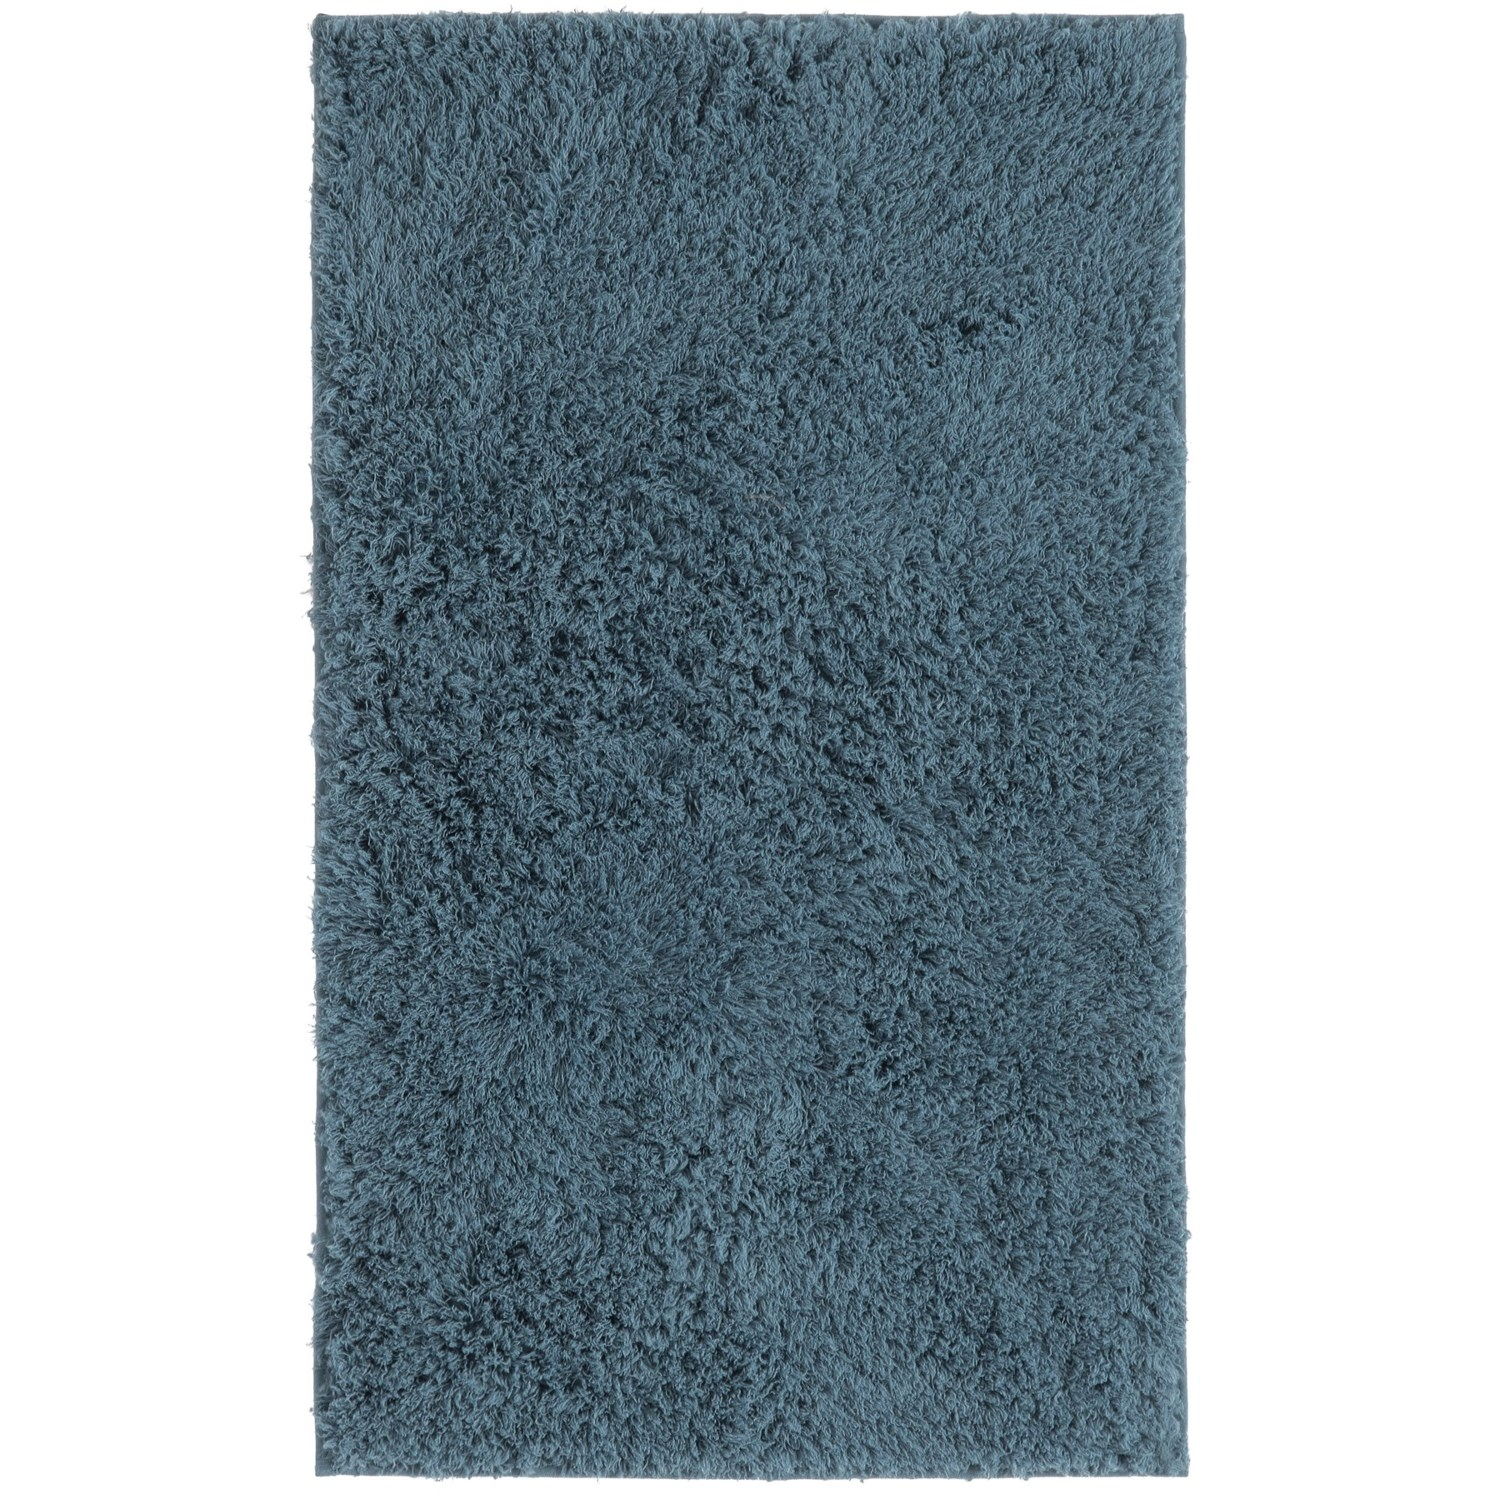 and nonslip bath beautiful rugs black bathroom turquoise towels white grey set printed marvellous color rug feathers blue peacock